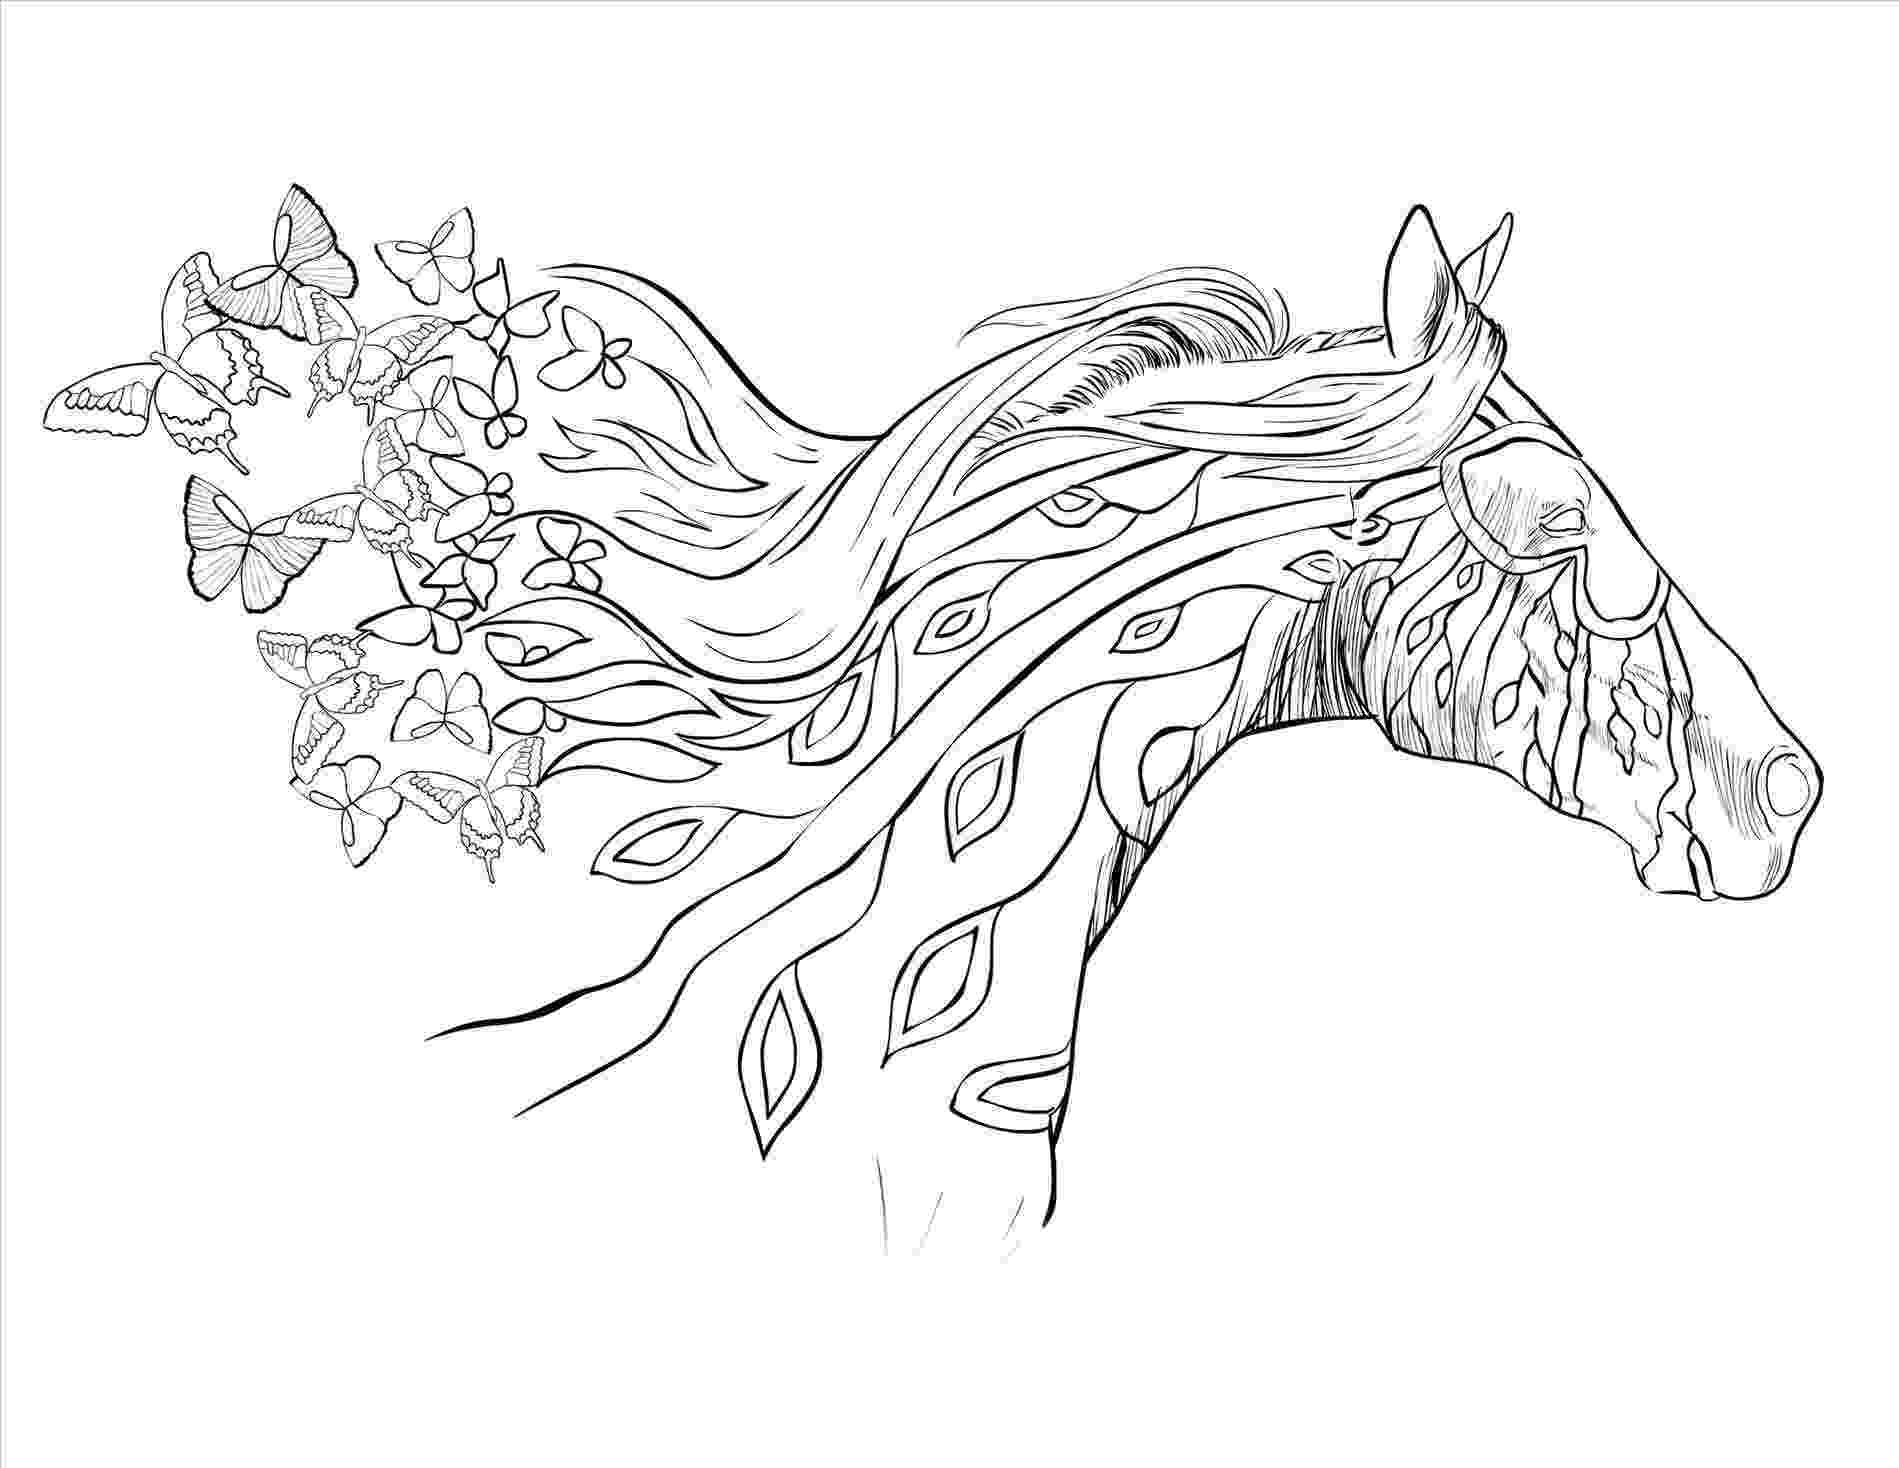 printable horse coloring pages for adults horse coloring page for adults adult coloring pages coloring horse for pages printable adults